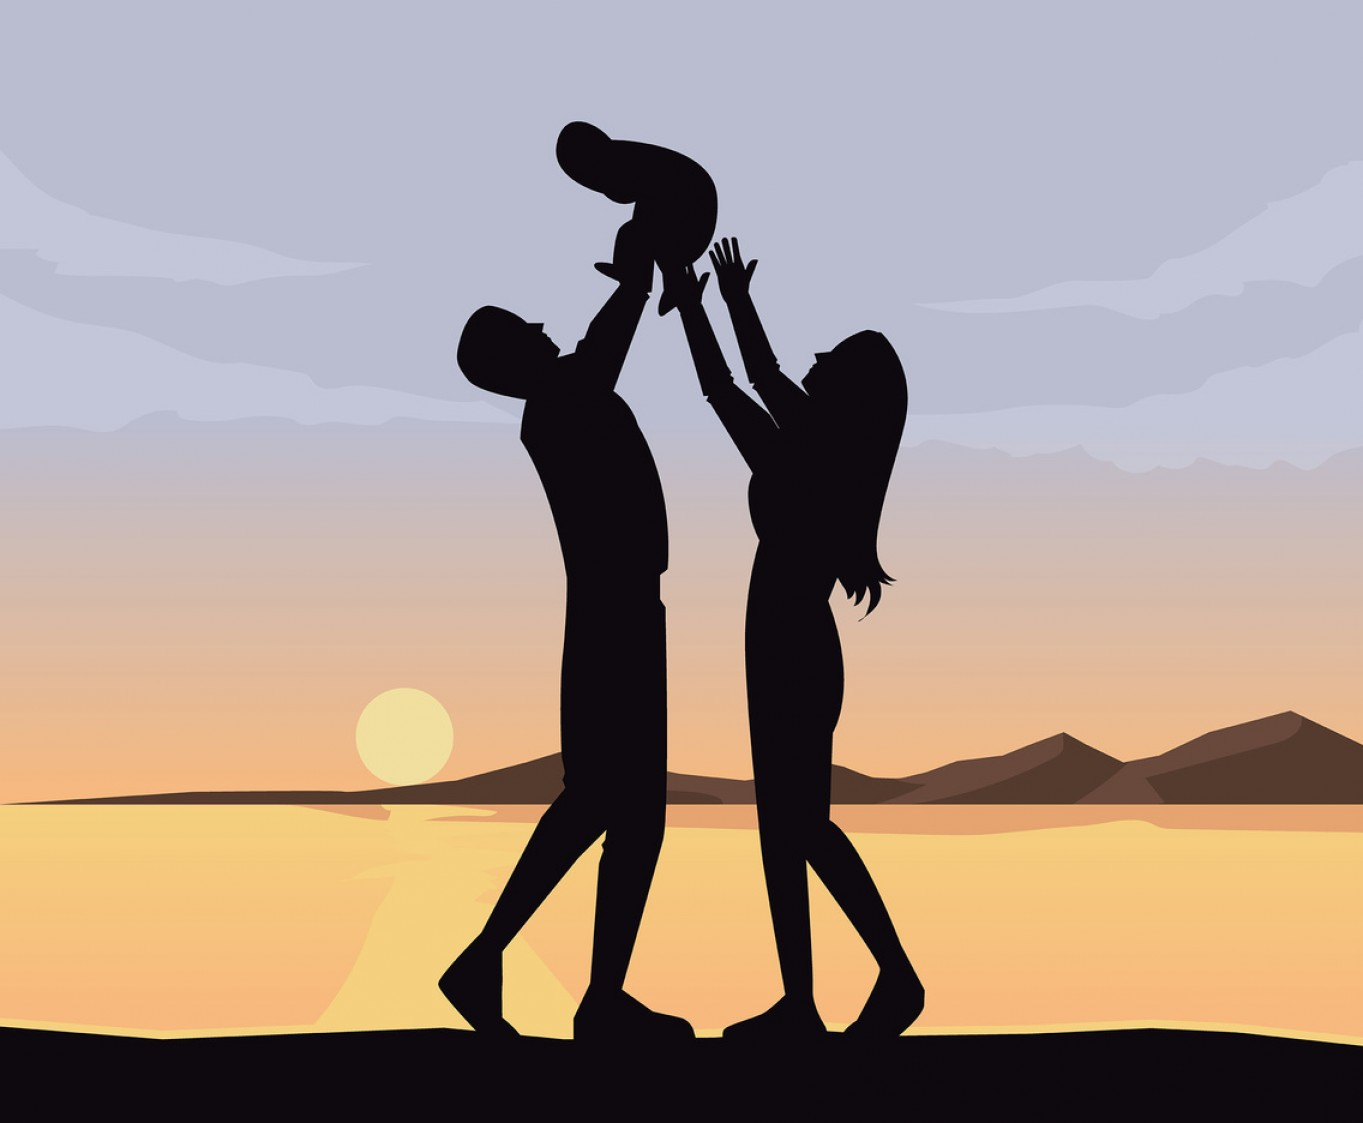 Family Silhouette Vector Art: Family With Sunset Background Vector